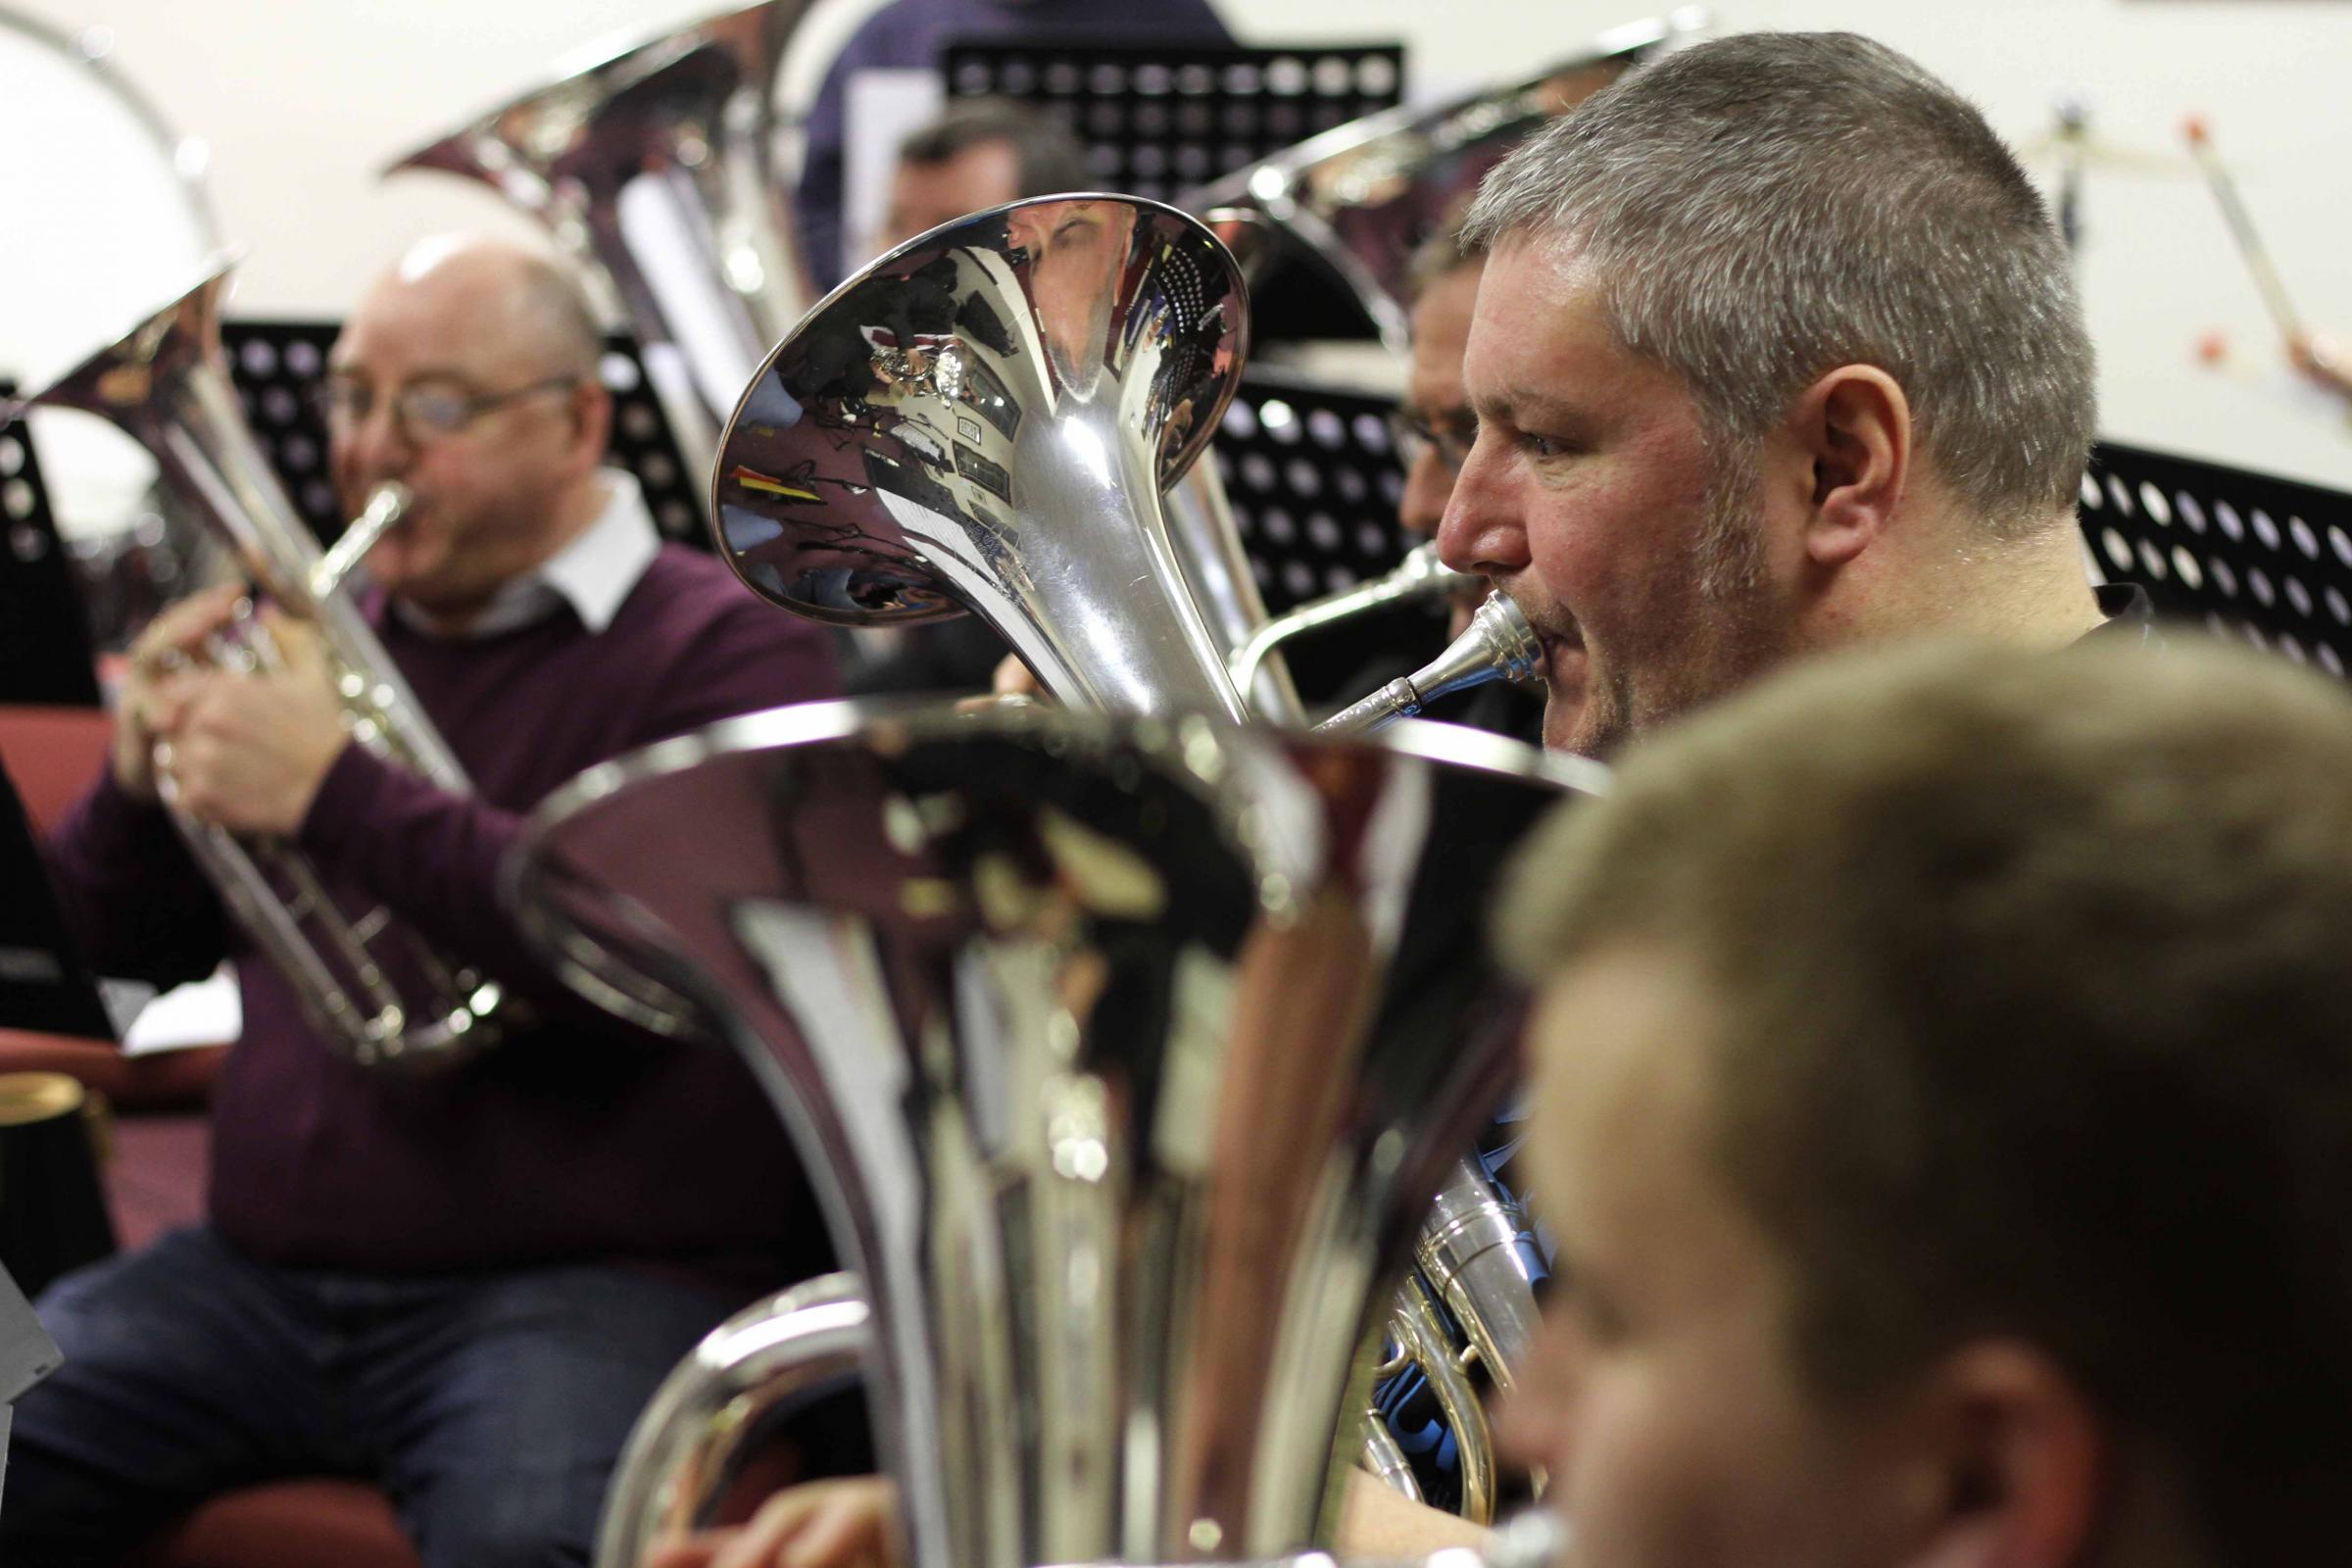 Fishburn Band prepares for action-packed 60th anniversary year